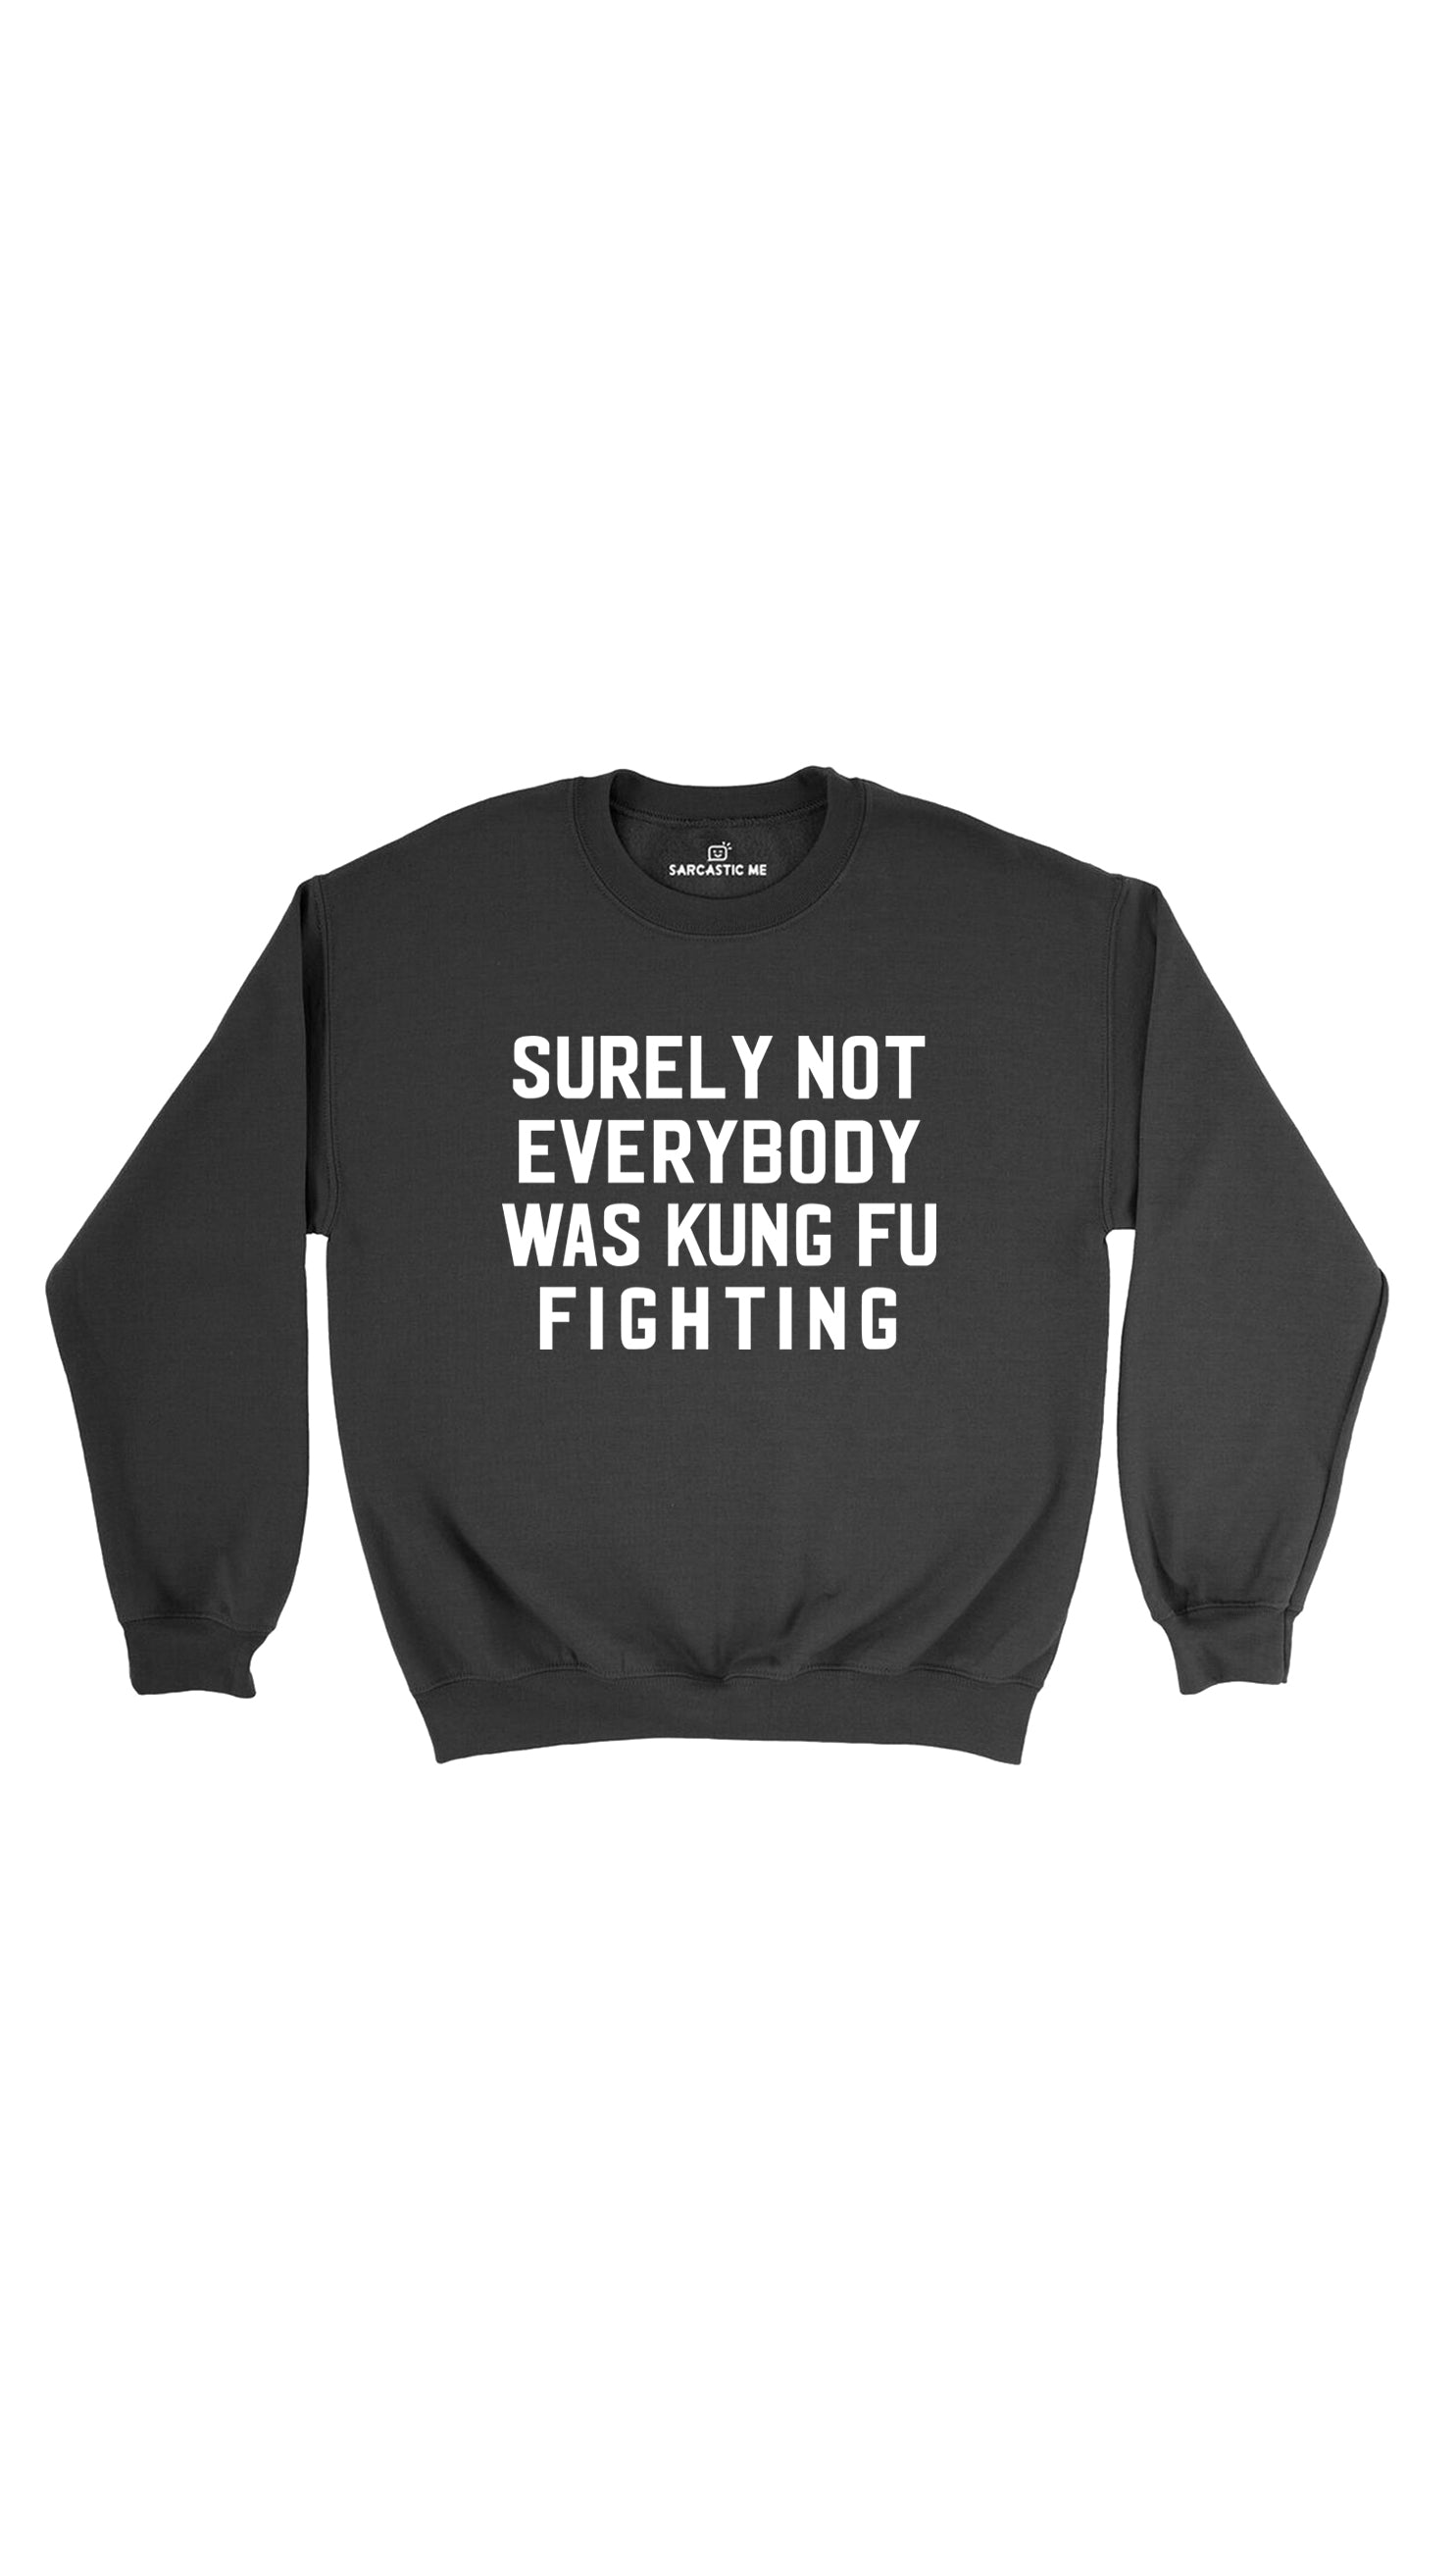 Surely Not Everybody Was Kung Fu Fighting Black Unisex Sweatshirt | Sarcastic Me